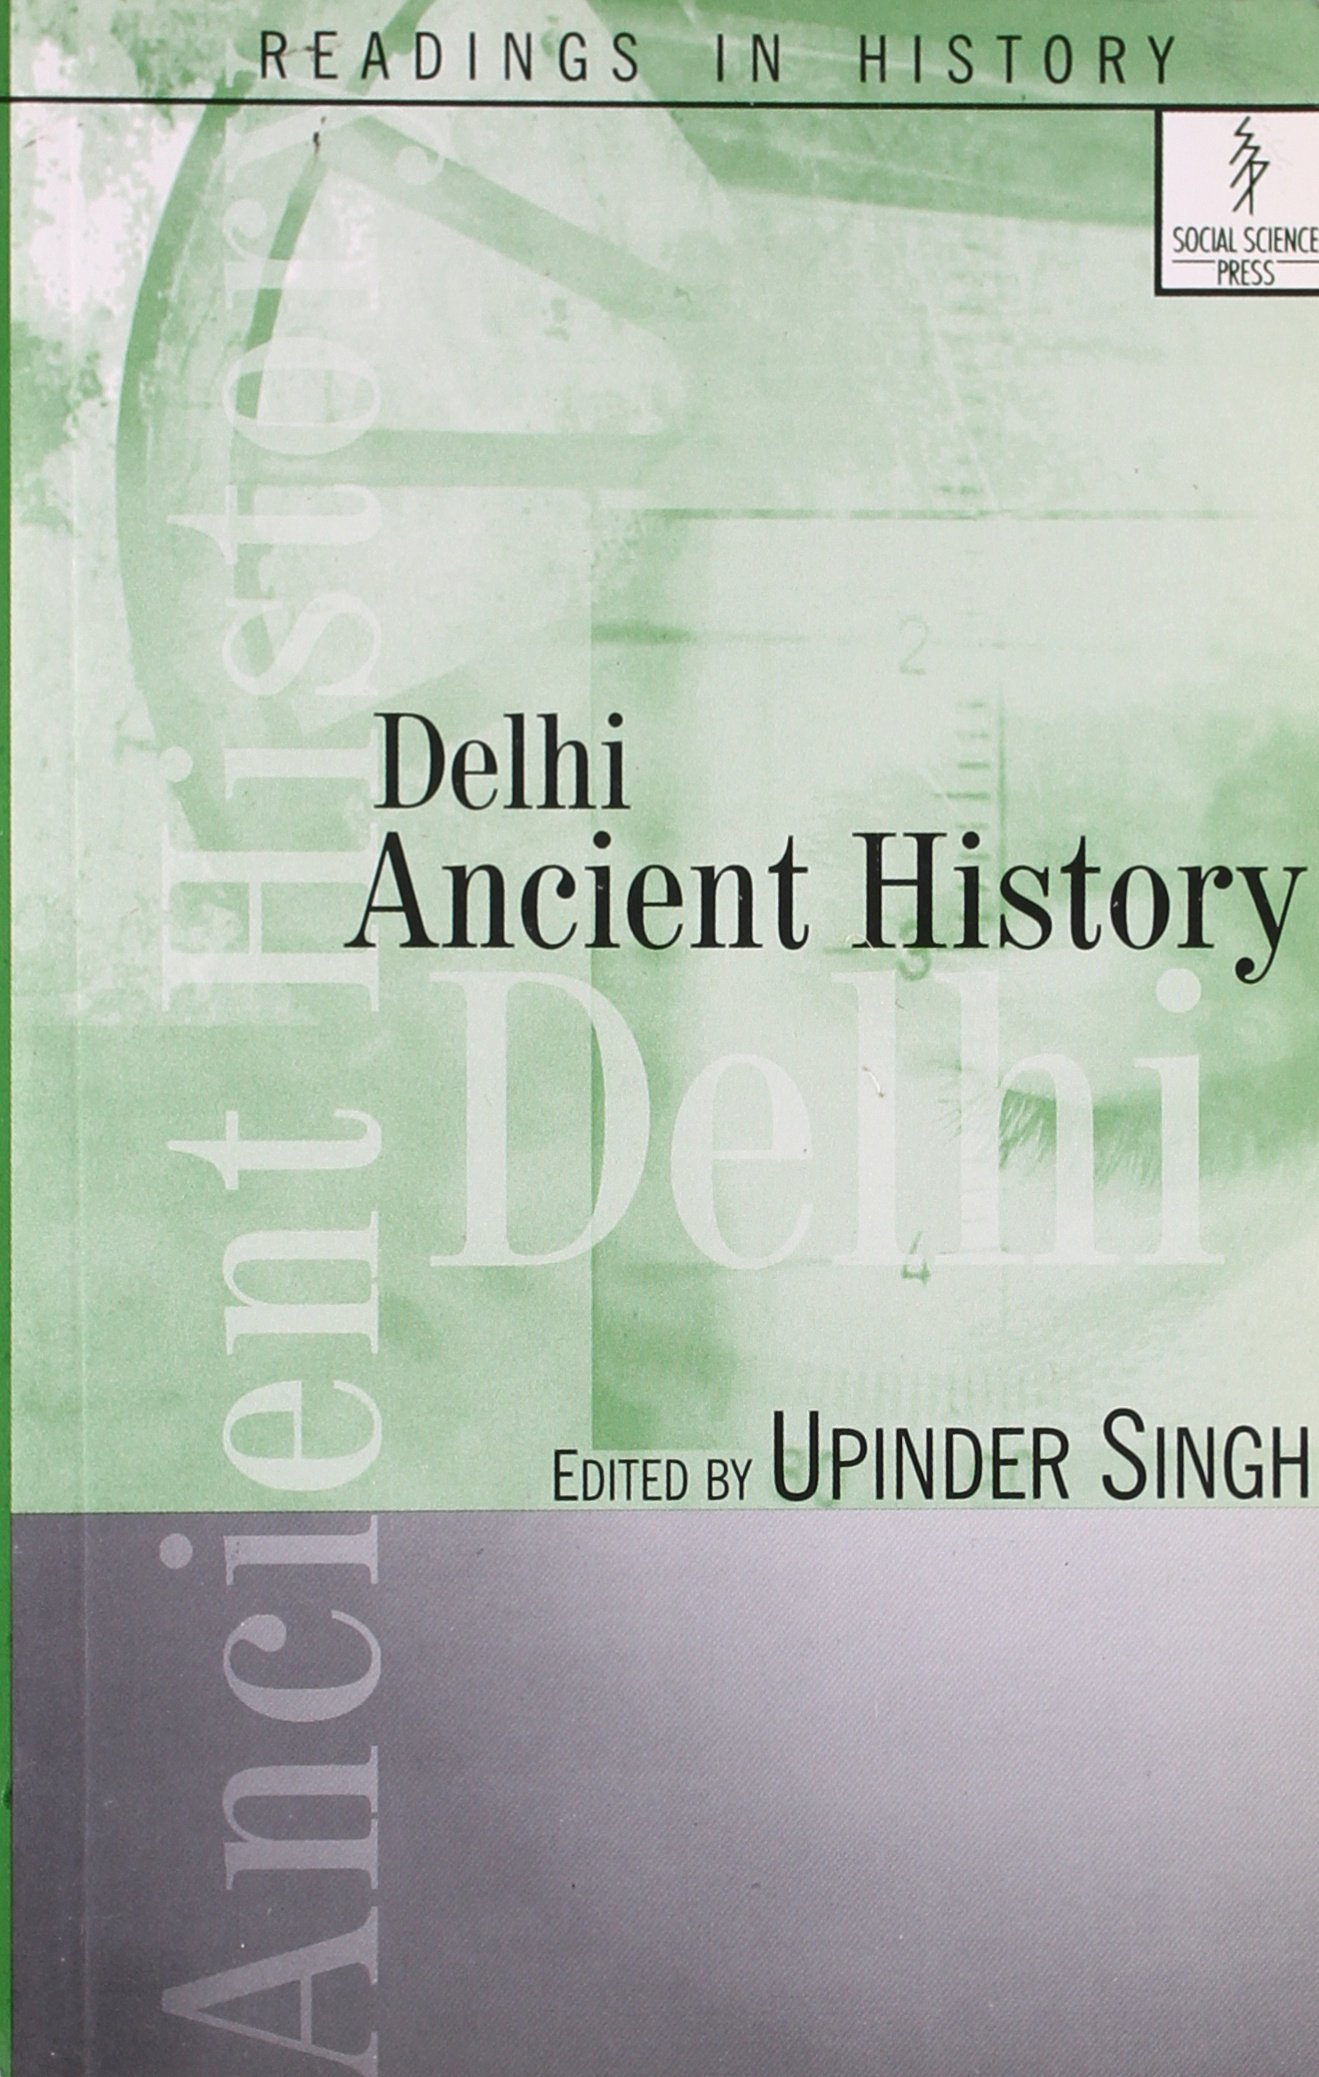 Delhi: Ancient History (Readings in History): Upinder Singh